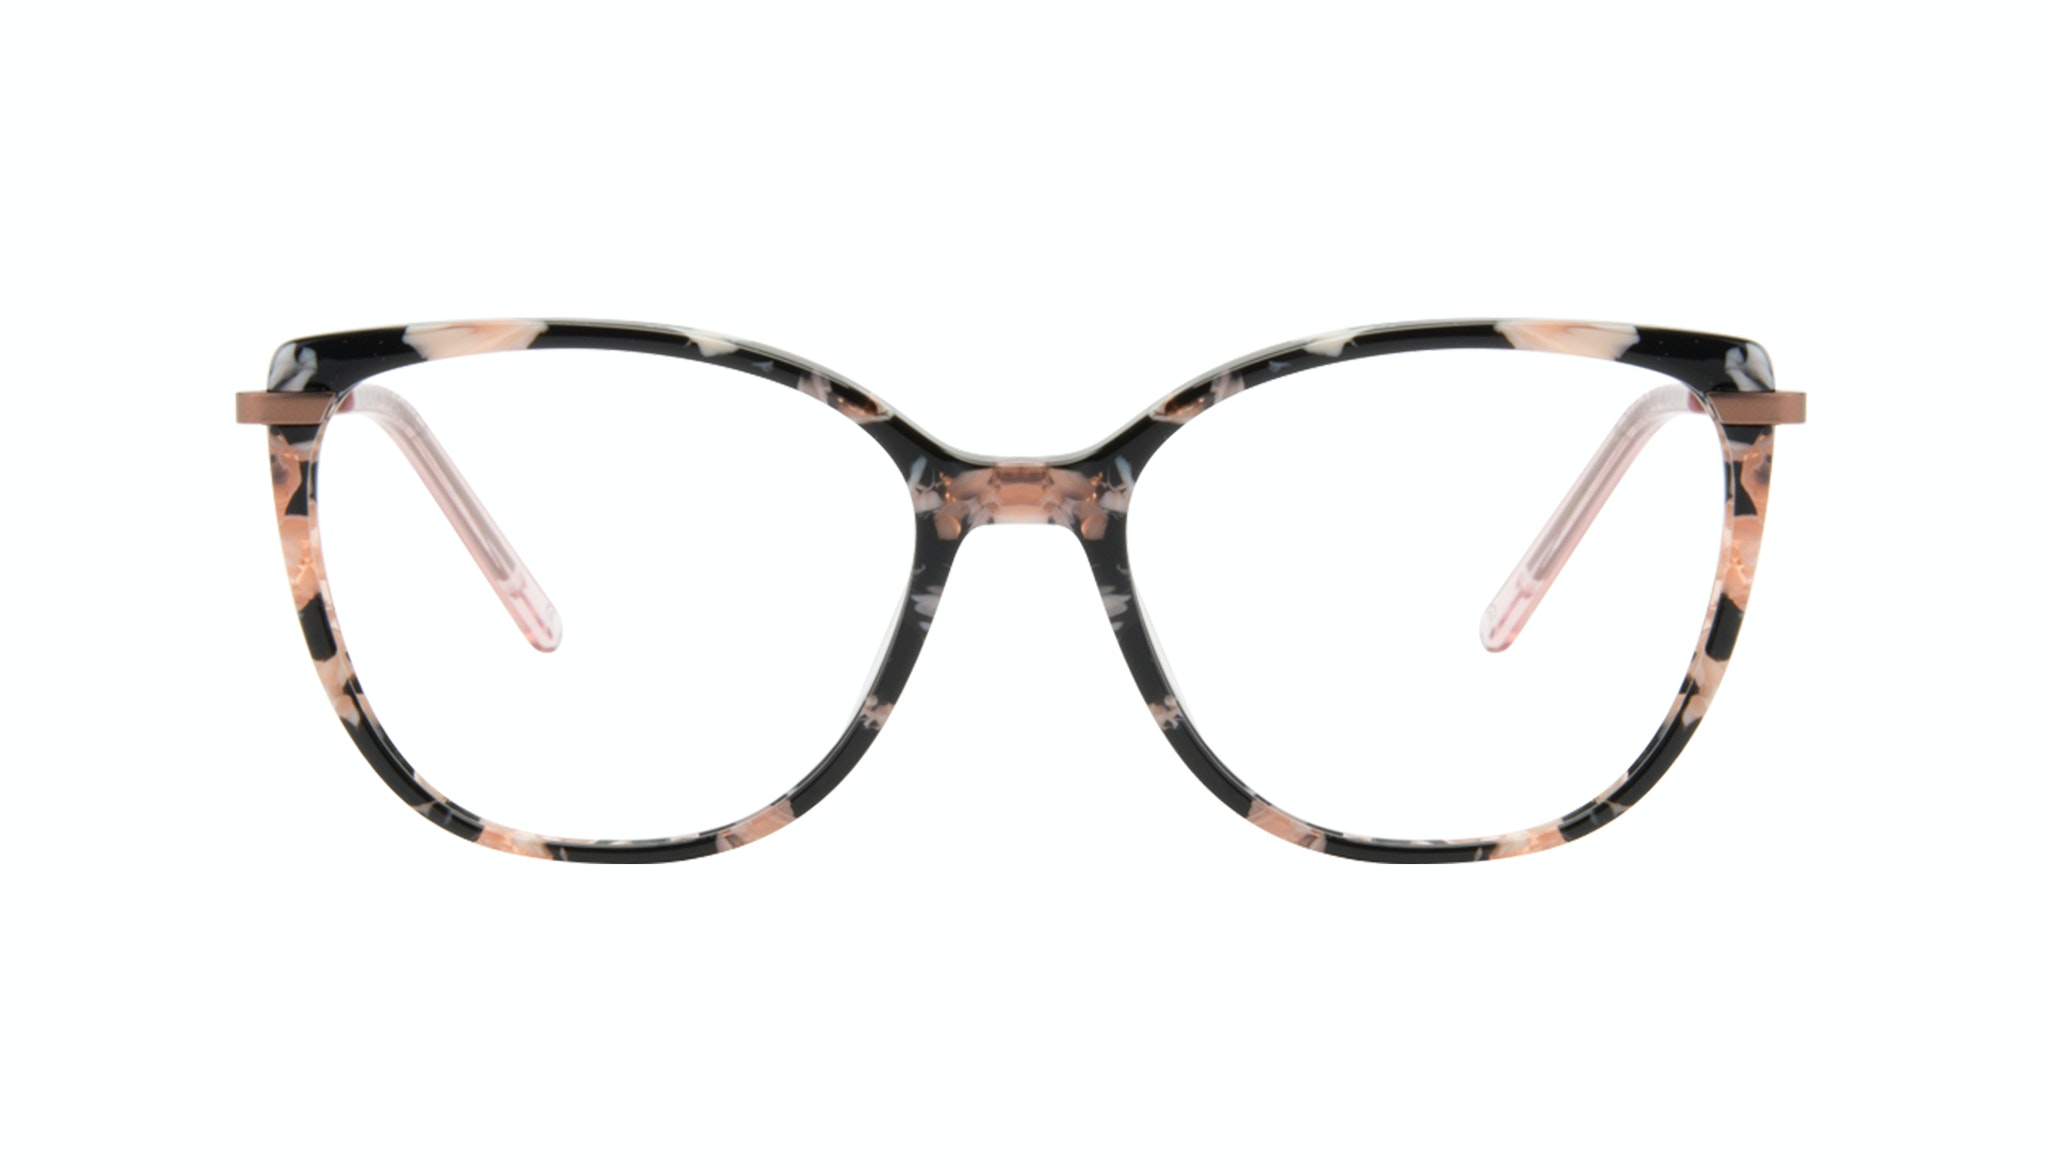 Affordable Fashion Glasses Cat Eye Rectangle Square Eyeglasses Women Illusion Licorice